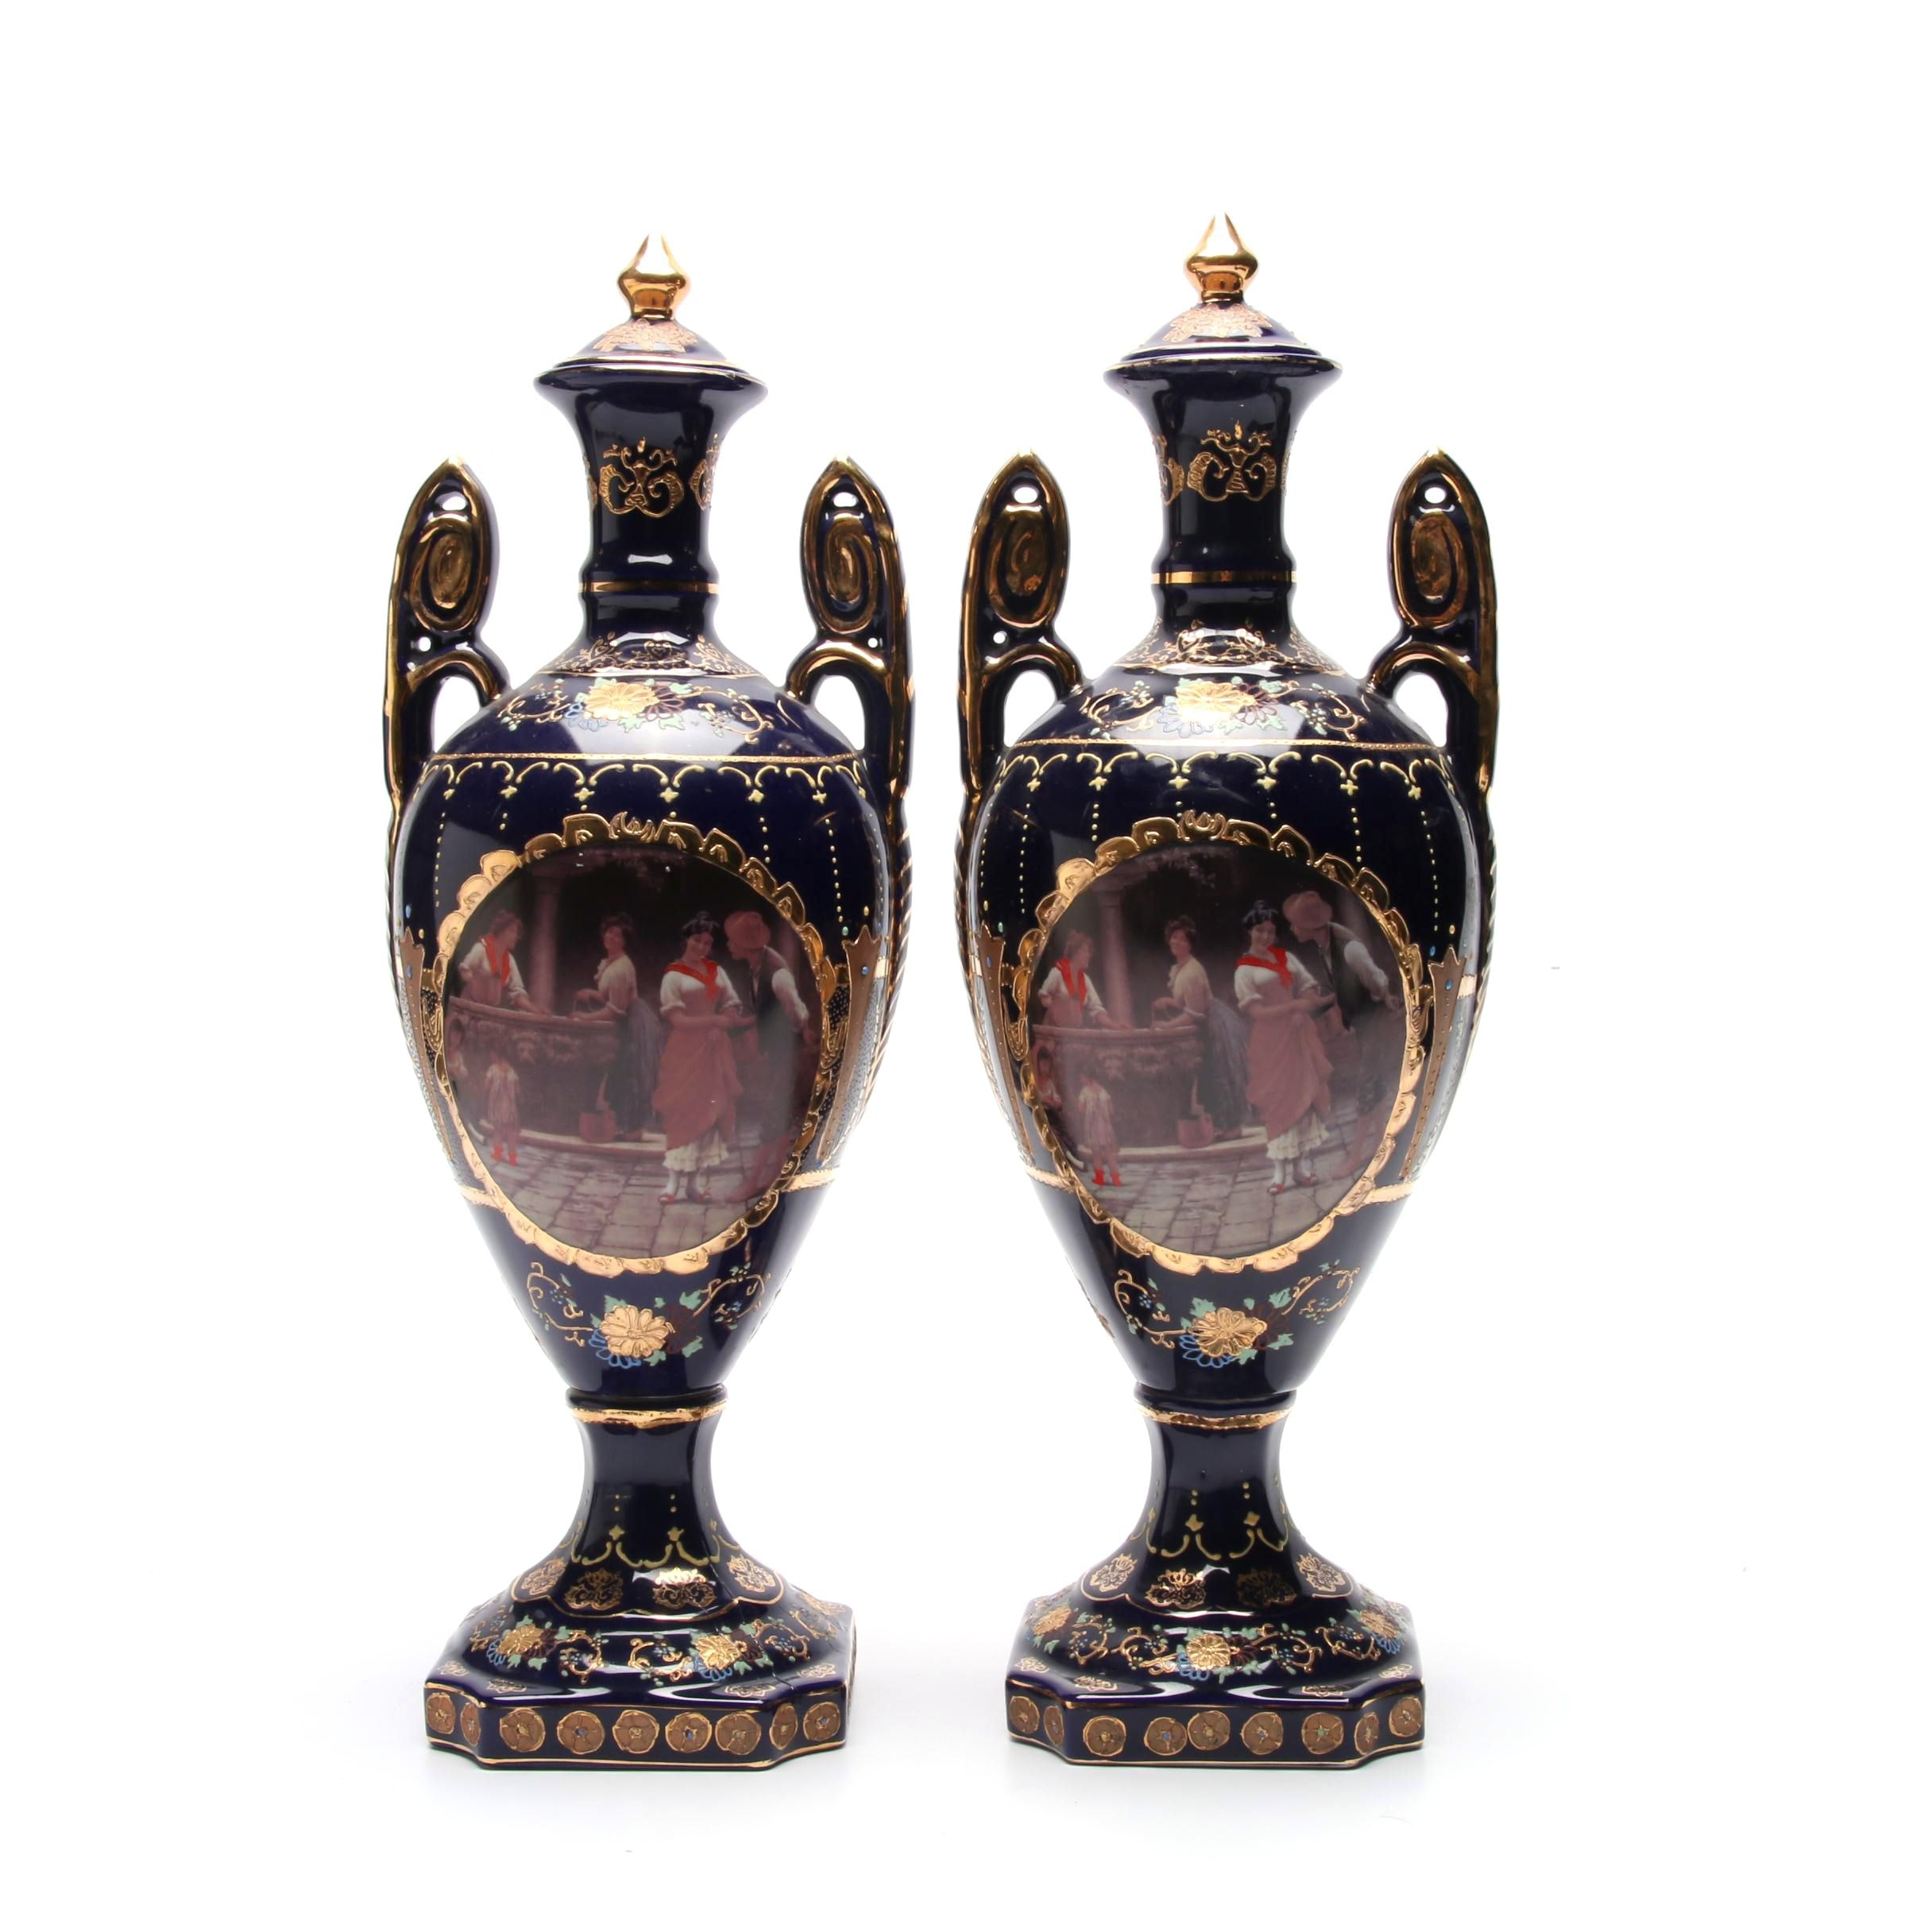 Pair of Limoges Style Garniture Vases